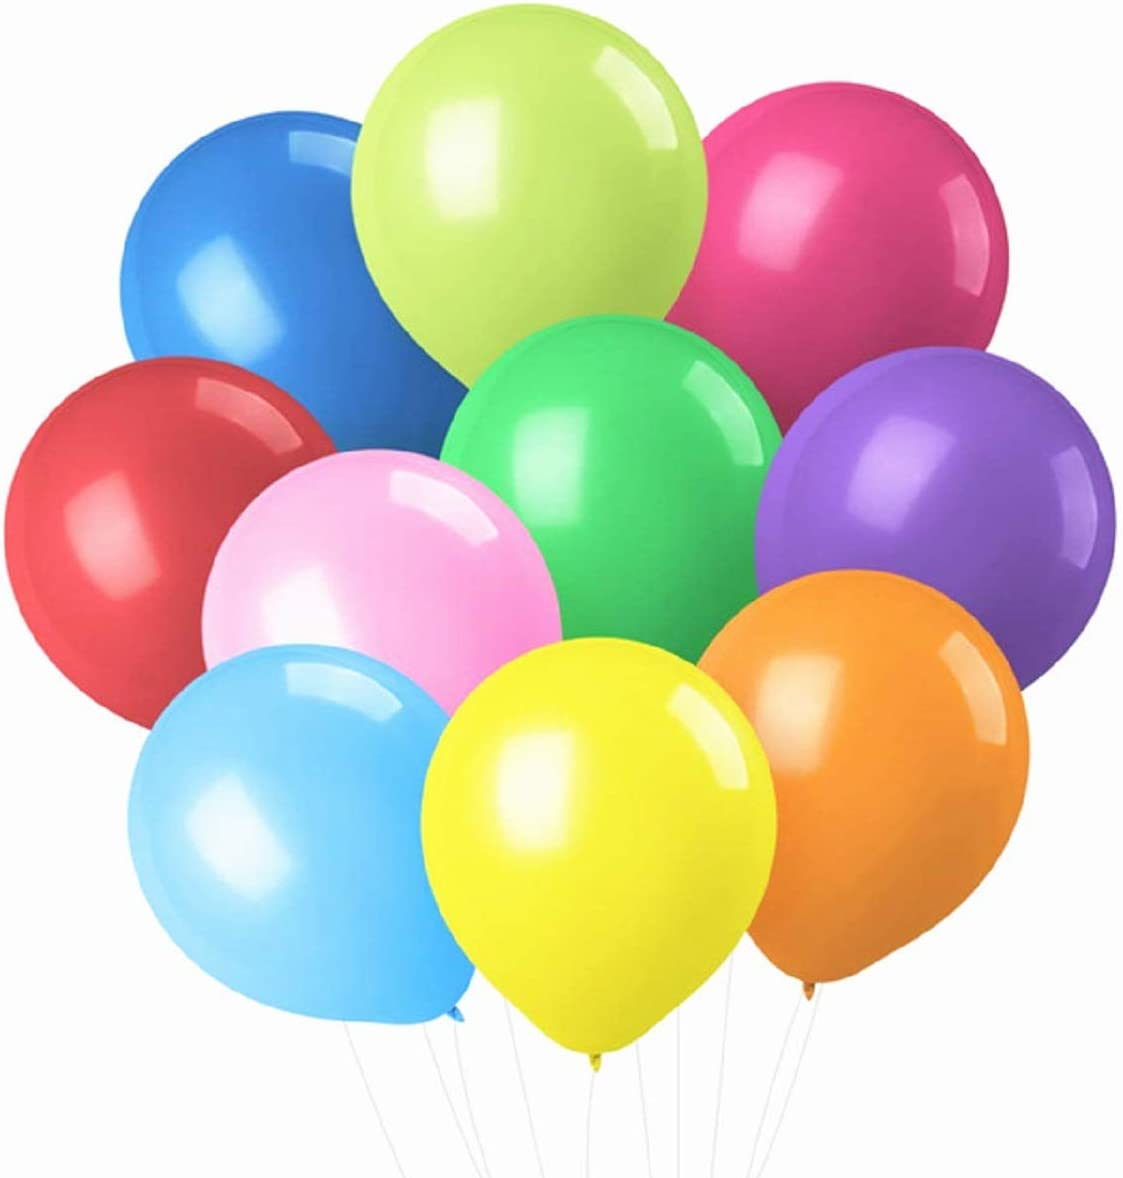 PeStary 100 pcs 12inches Latex Colorful Product Max 89% OFF Assored Balloons Birthda